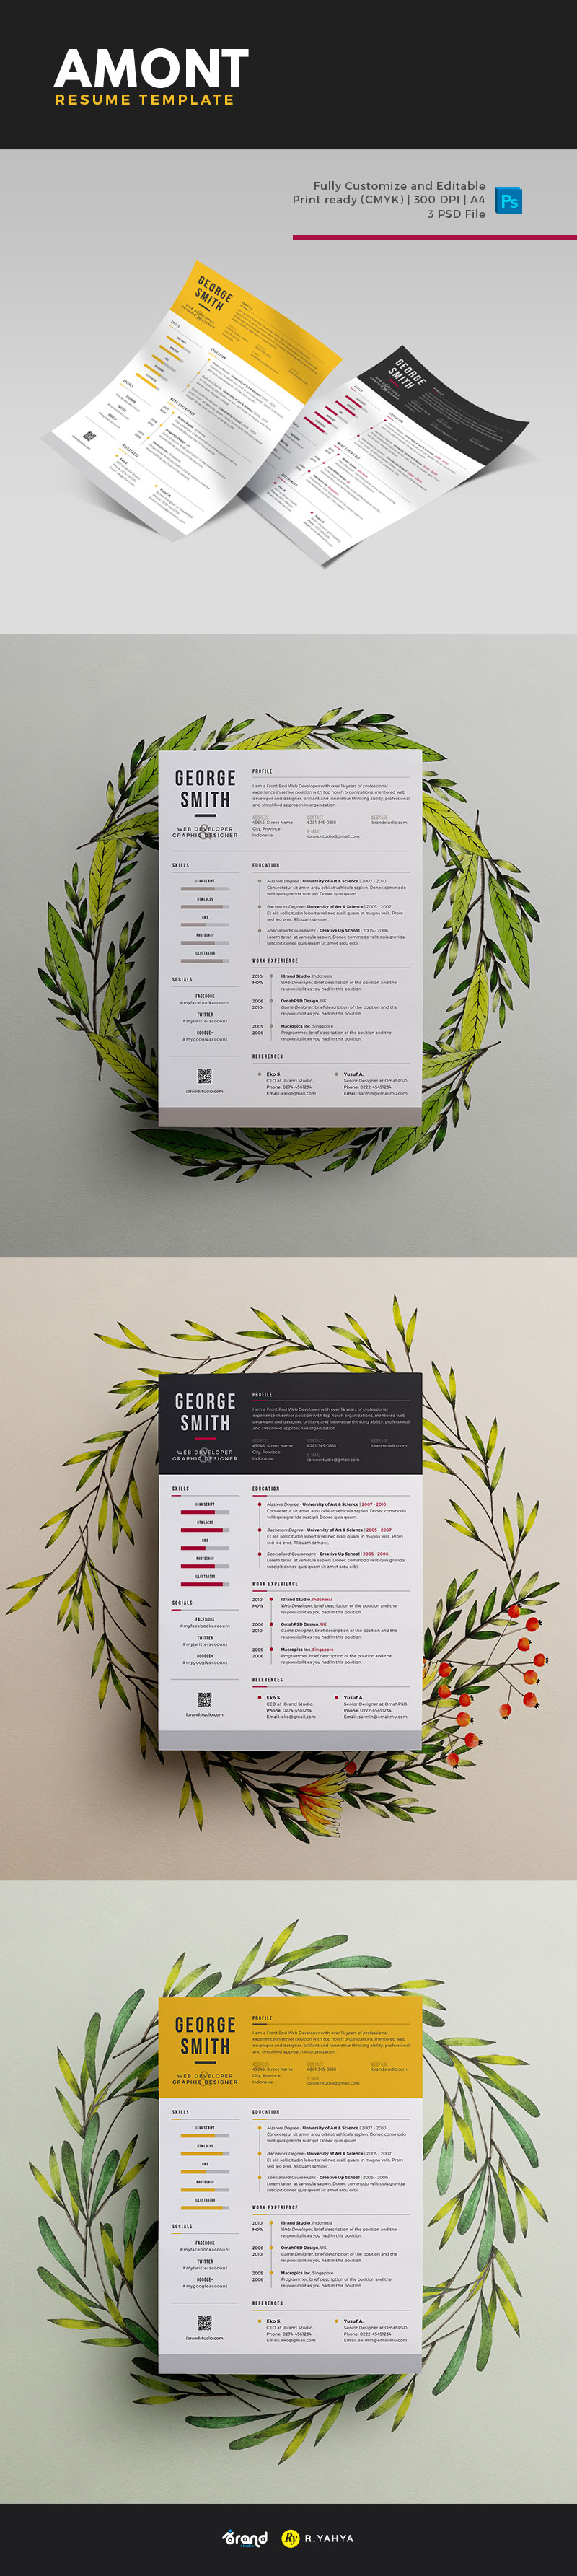 Free Amont Resume Template (PSD)